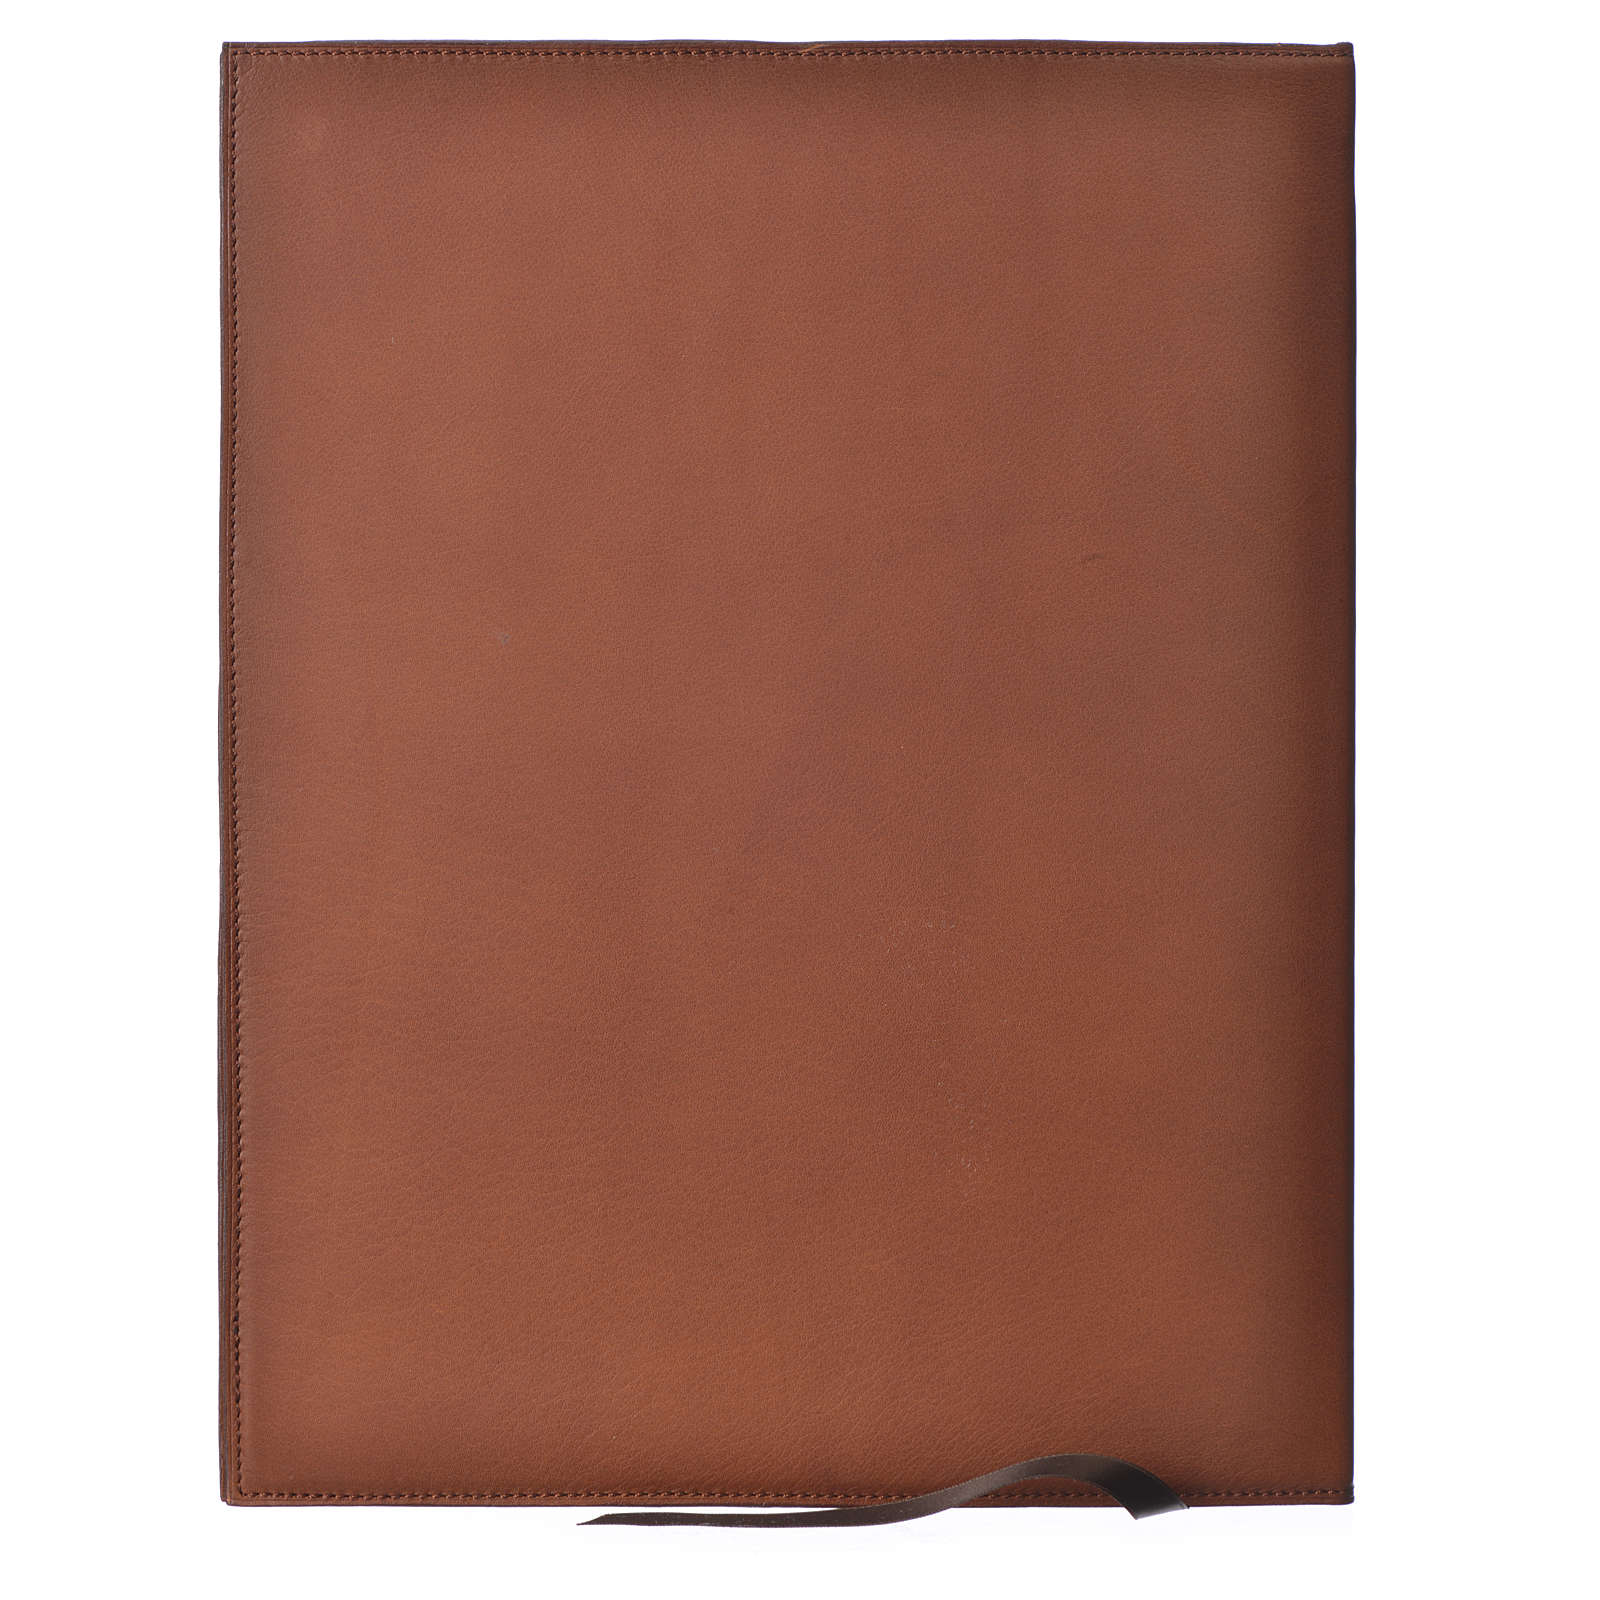 Folder for sacred rites in brown leather, hot pressed lamb Bethleem, A4 size 4